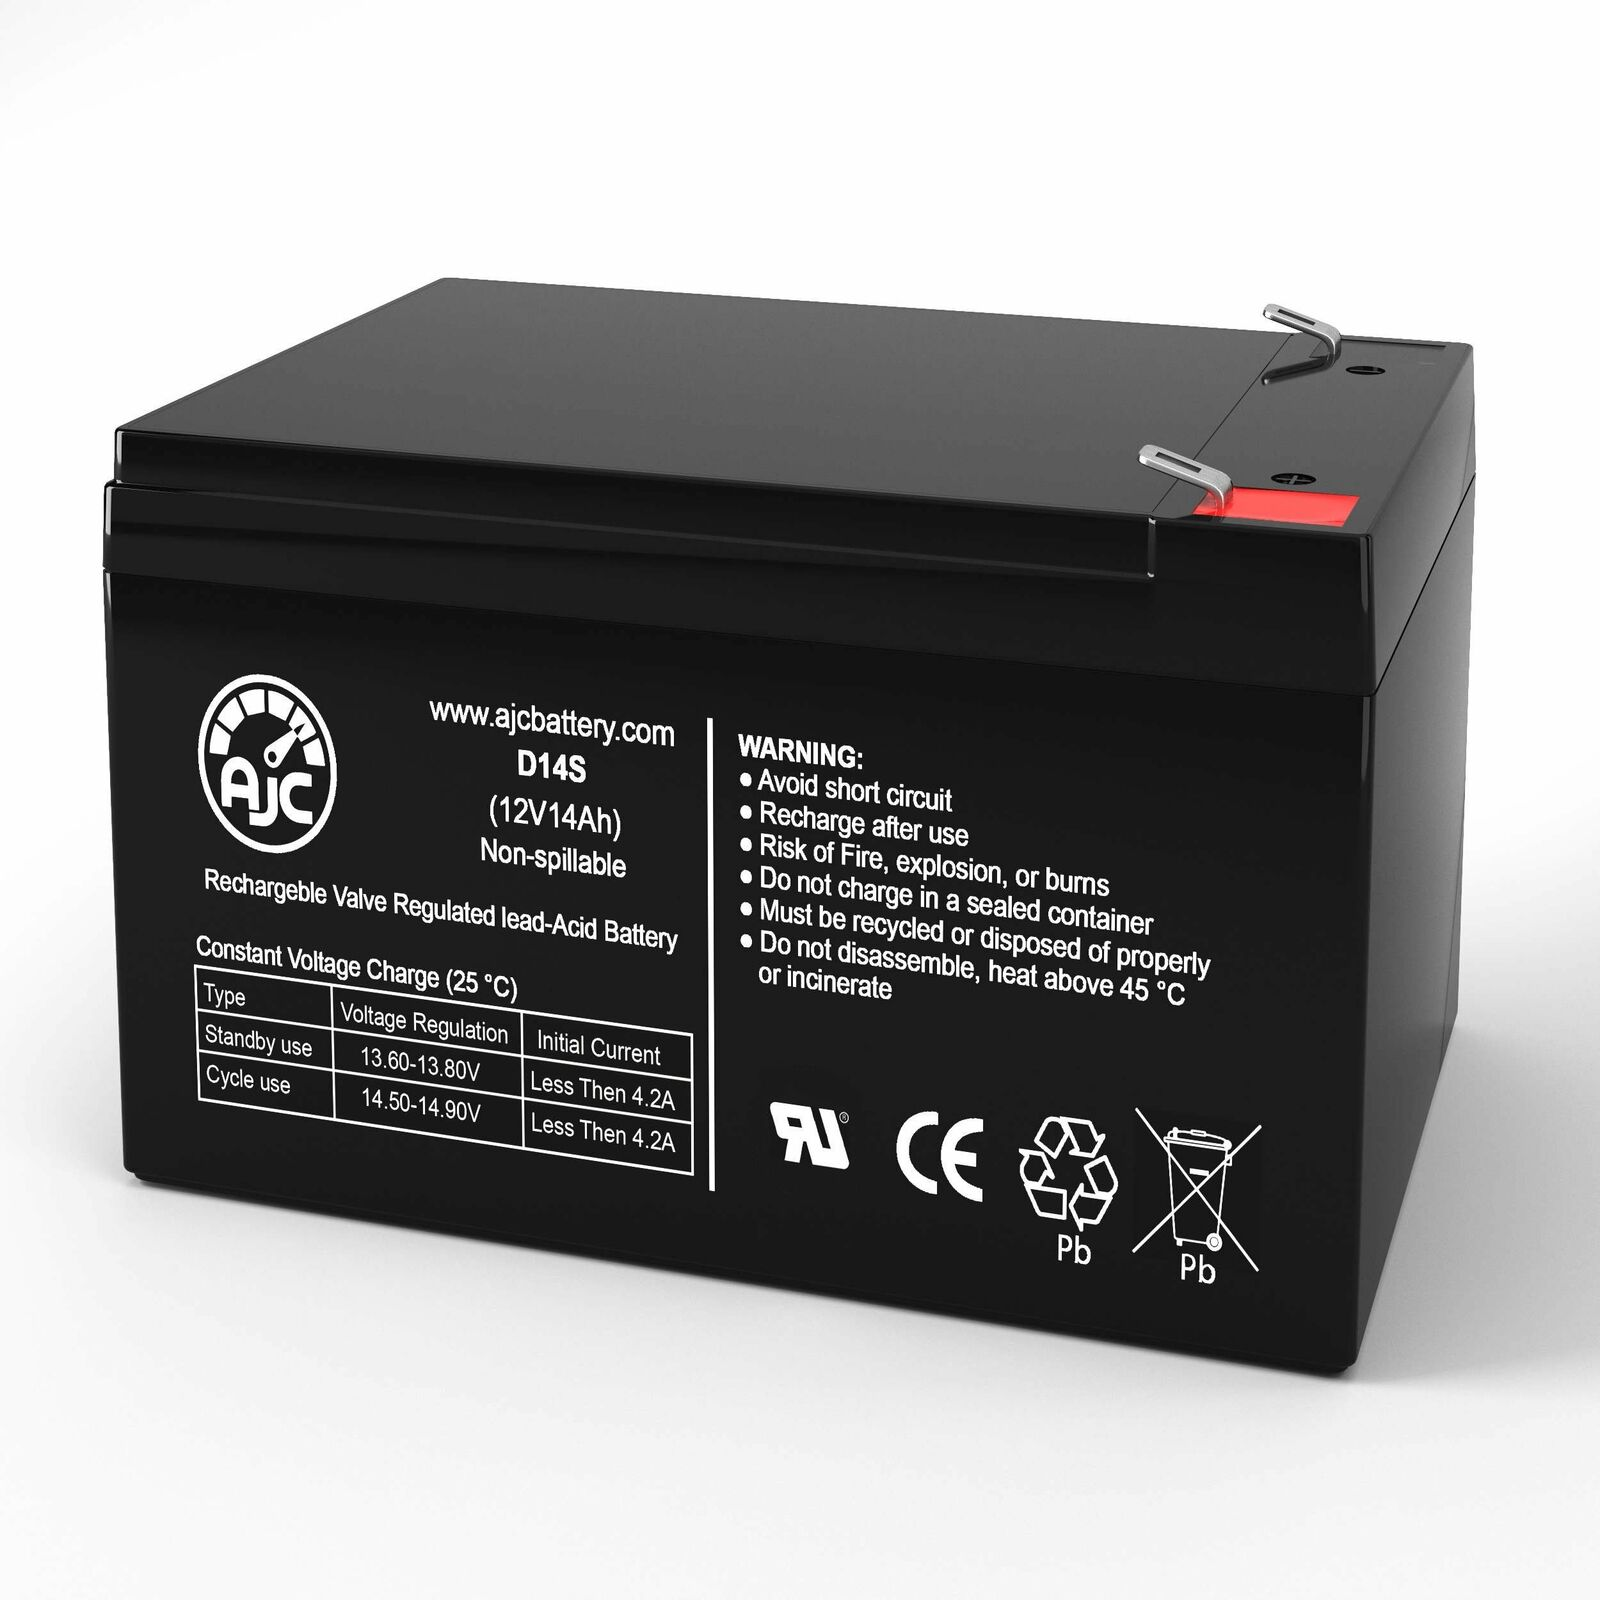 Enersys SBS15 12V 14Ah Sealed Lead Acid Replacement Battery